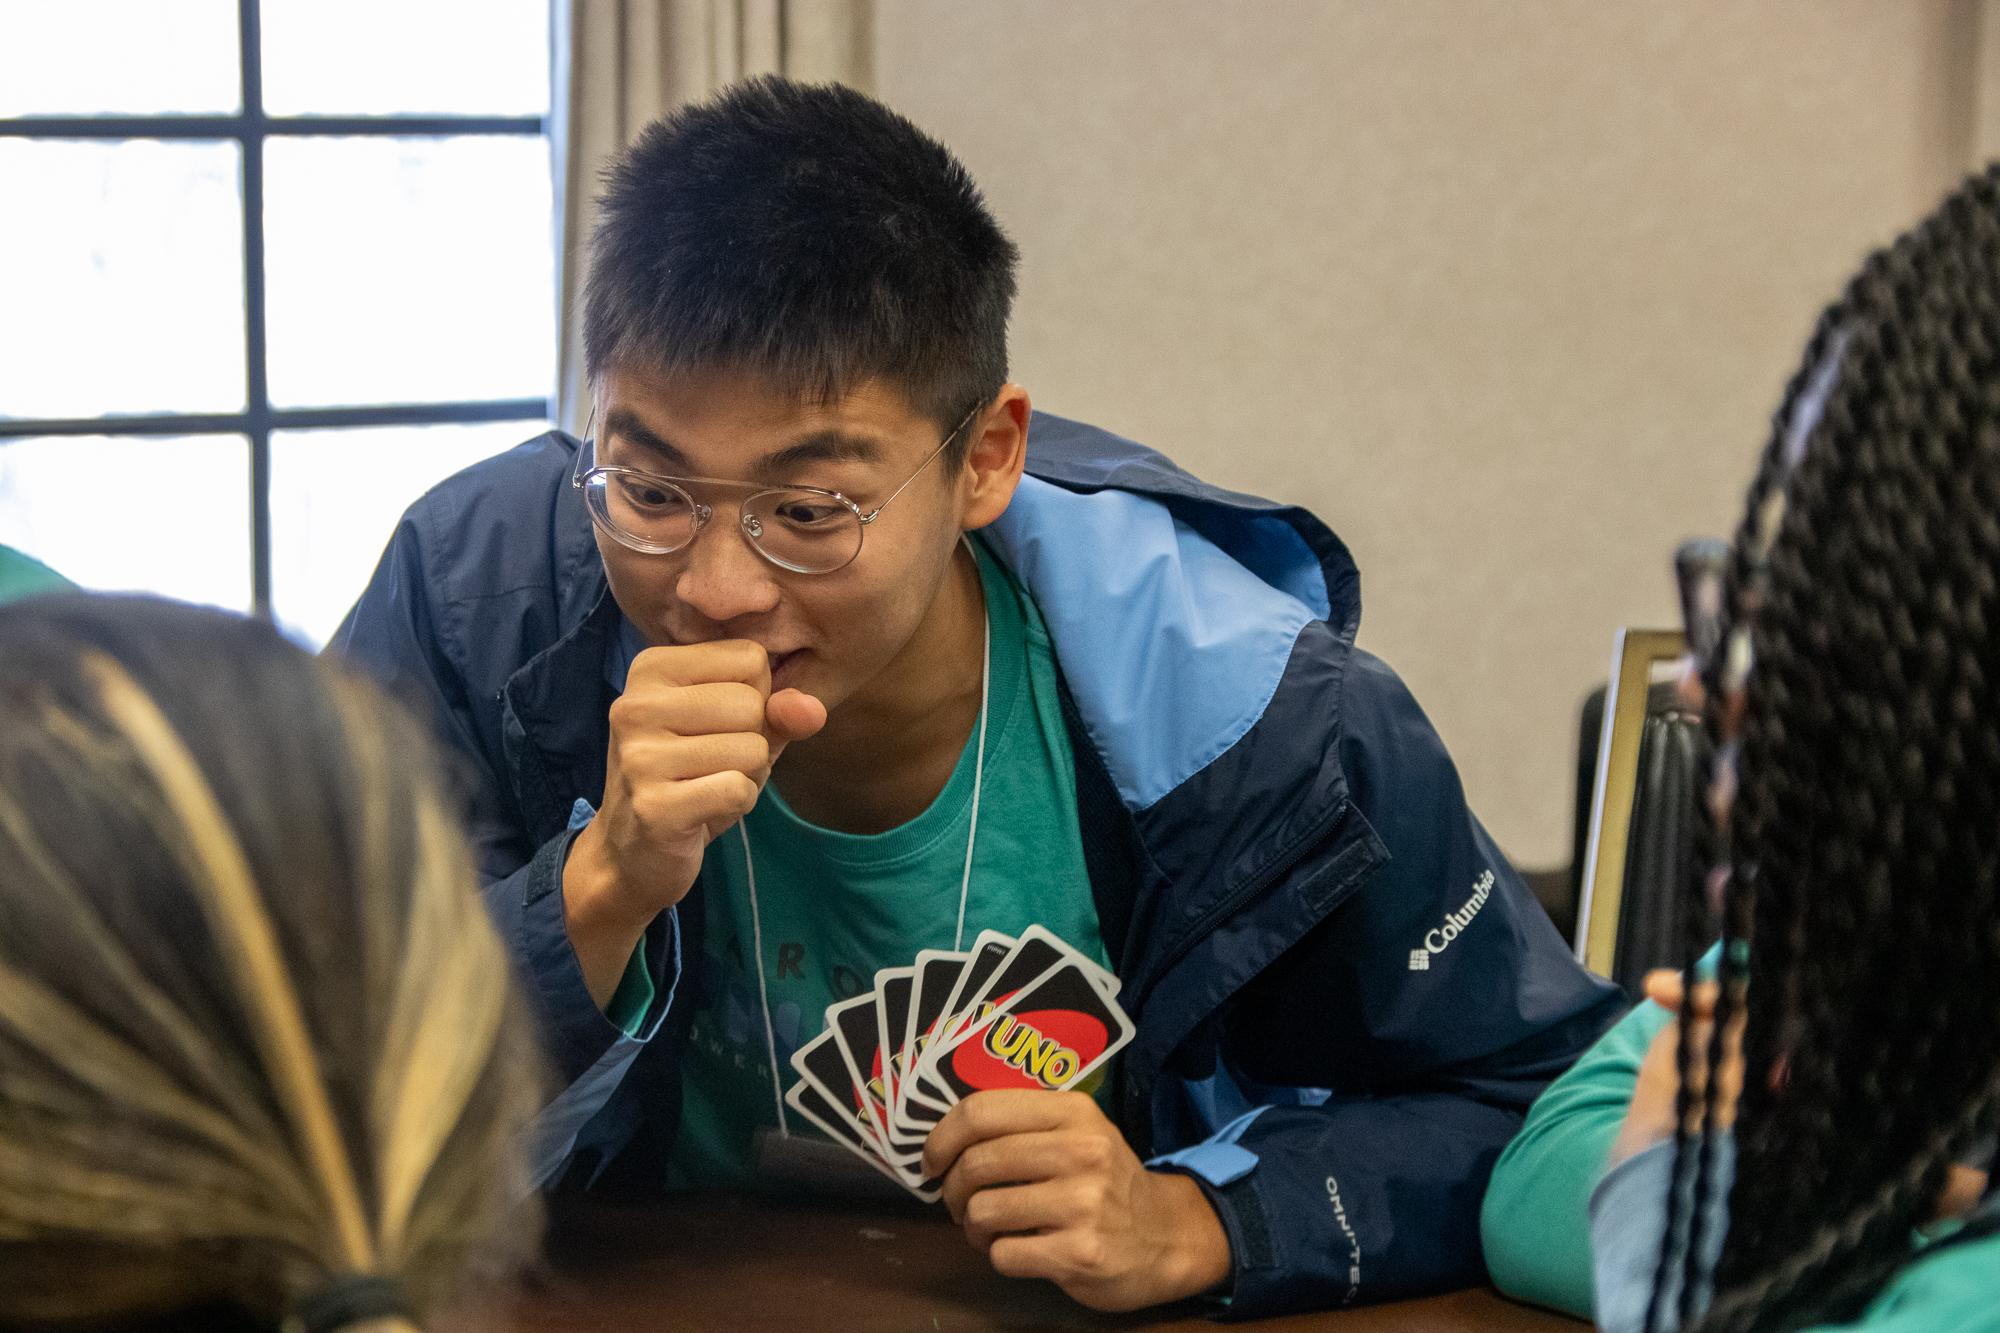 Student amazed at card game